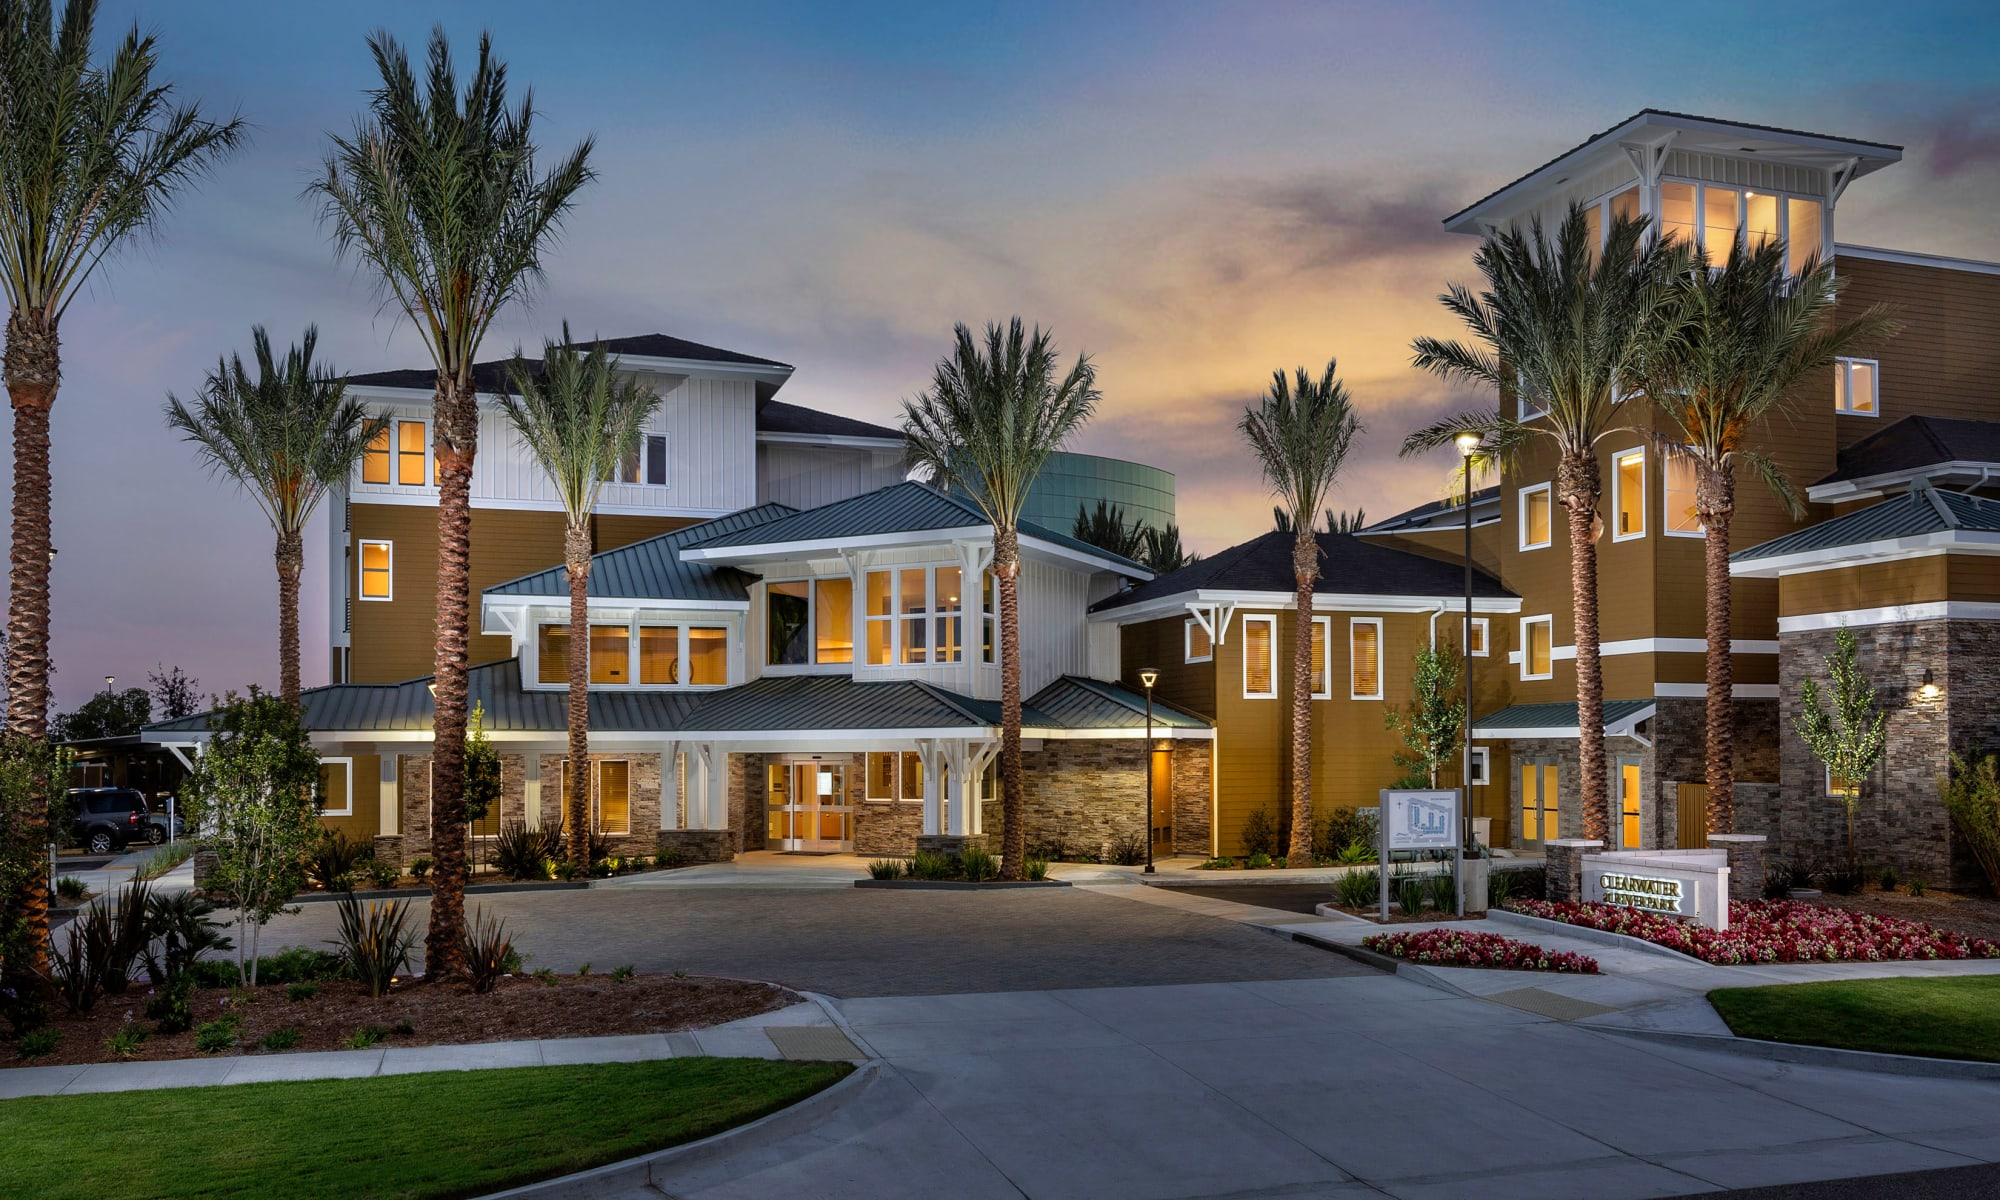 Apartments at Clearwater at Riverpark in Oxnard California